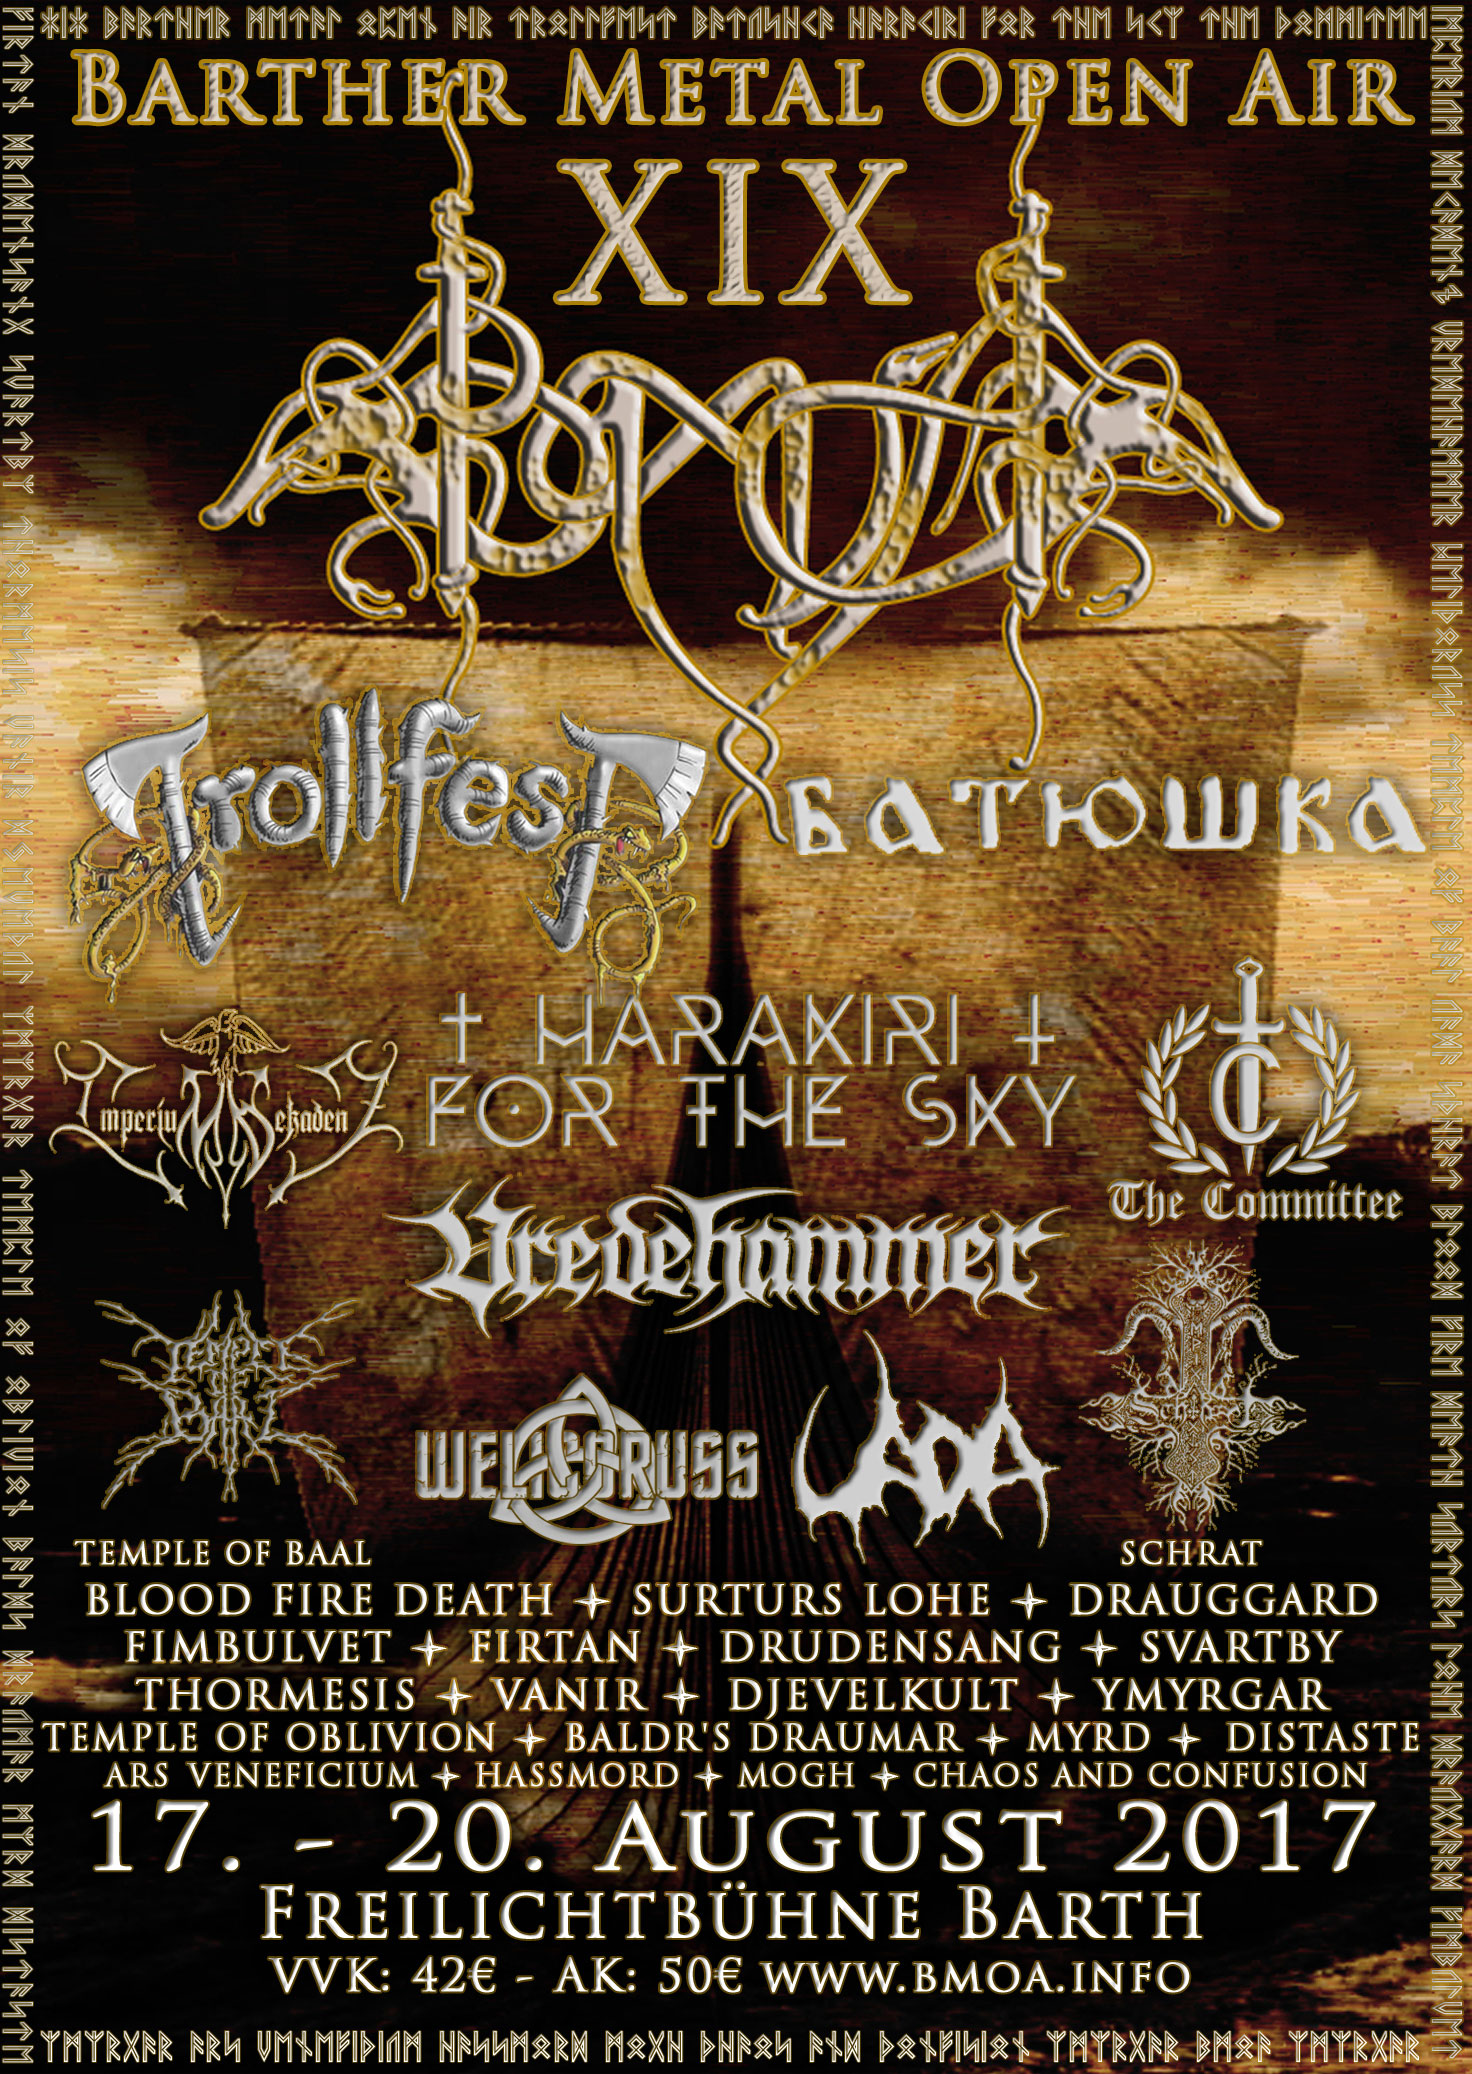 BARTHER METAL OPEN AIR